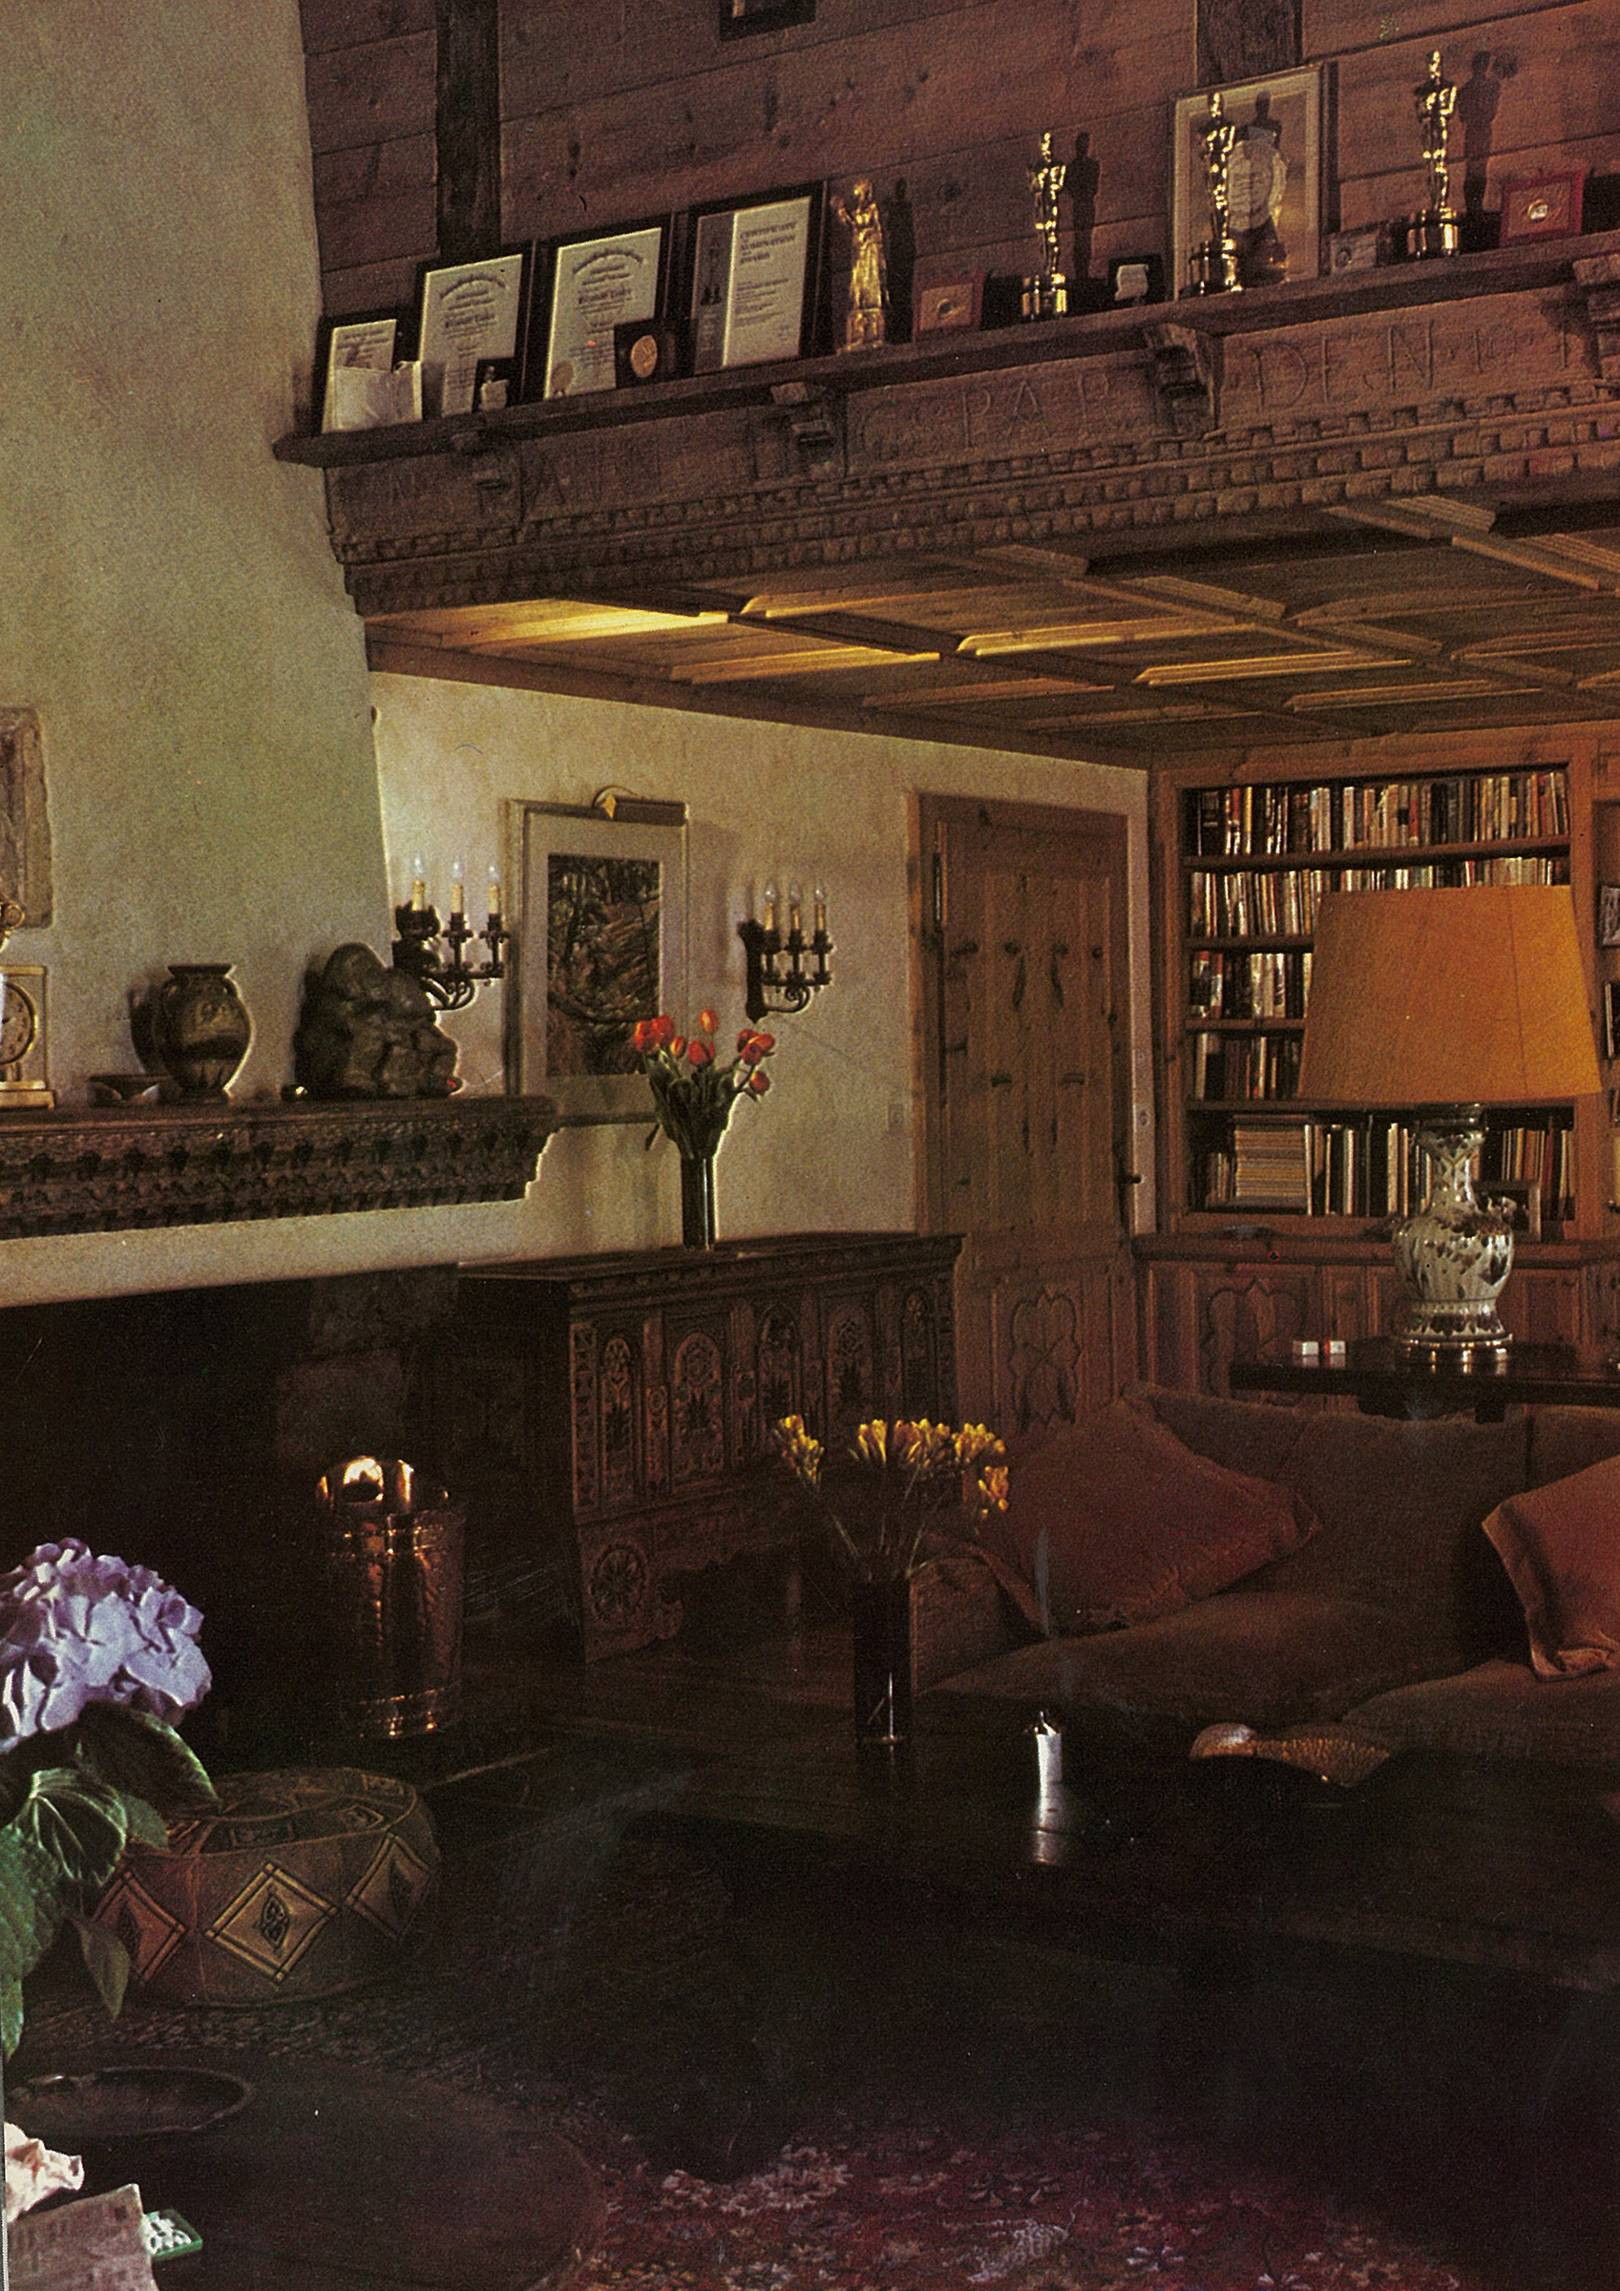 From the archive: Elizabeth Taylor and Richard Burton's chalet in Gstaad (1970)